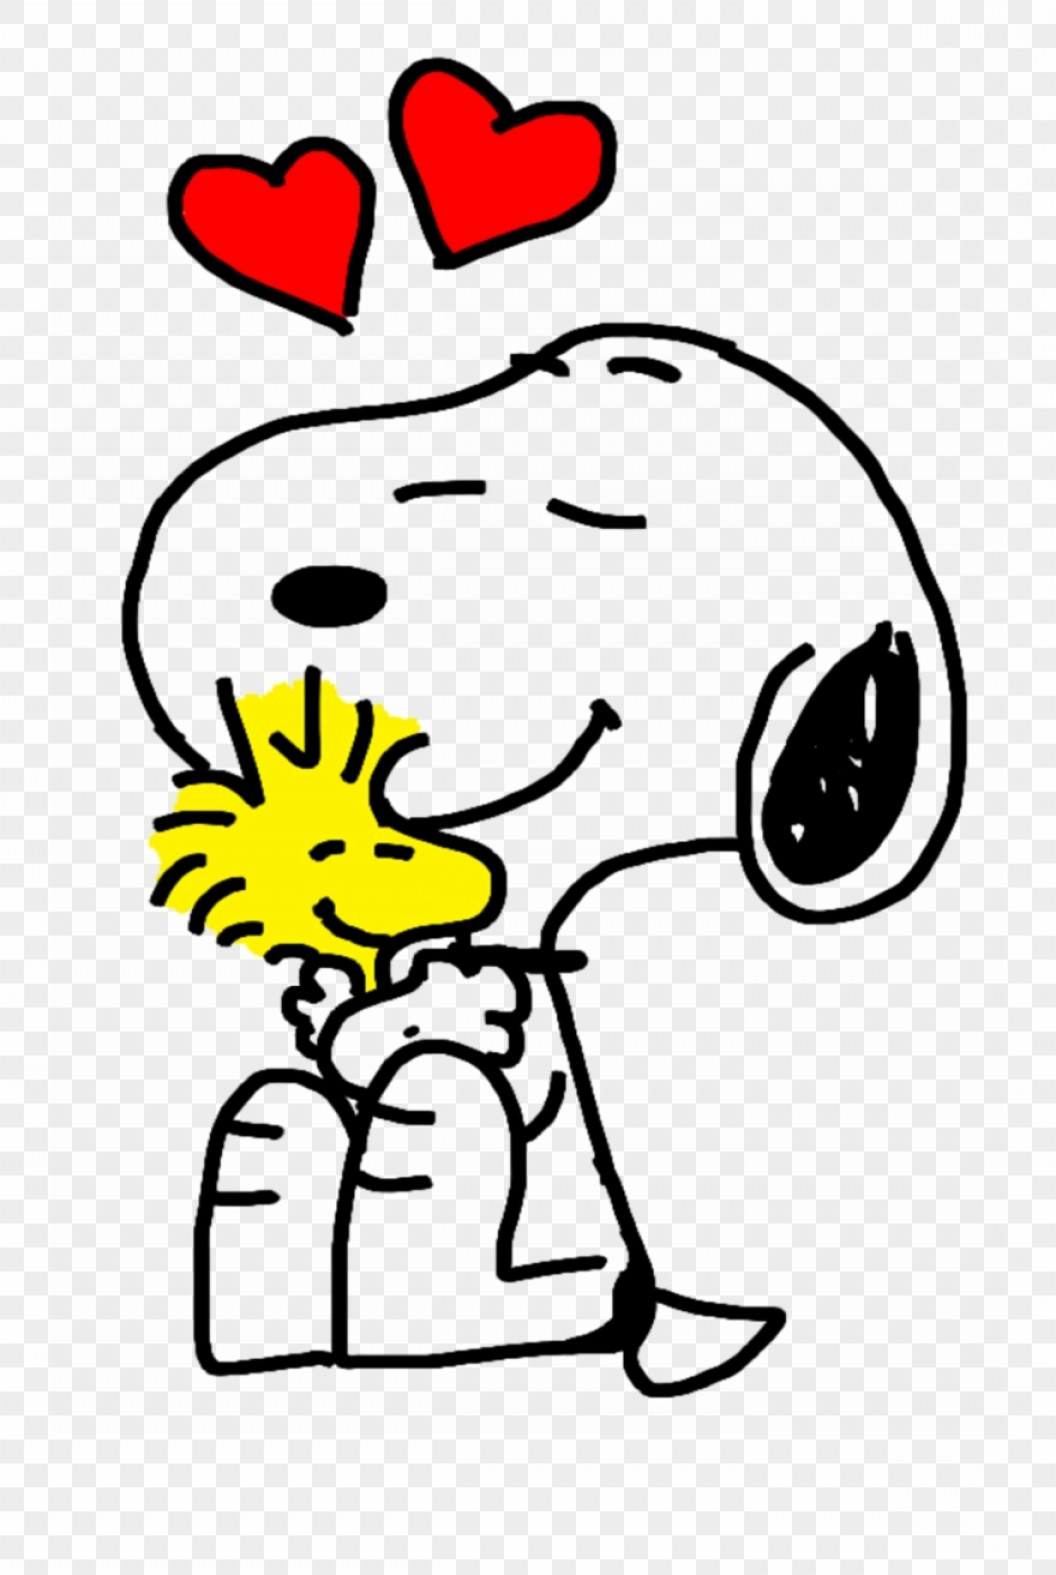 Snoopy Vector Graphic: Iibhrodownload Snoopy Clipart Snoopy Woodstock Clip Art Snoopy